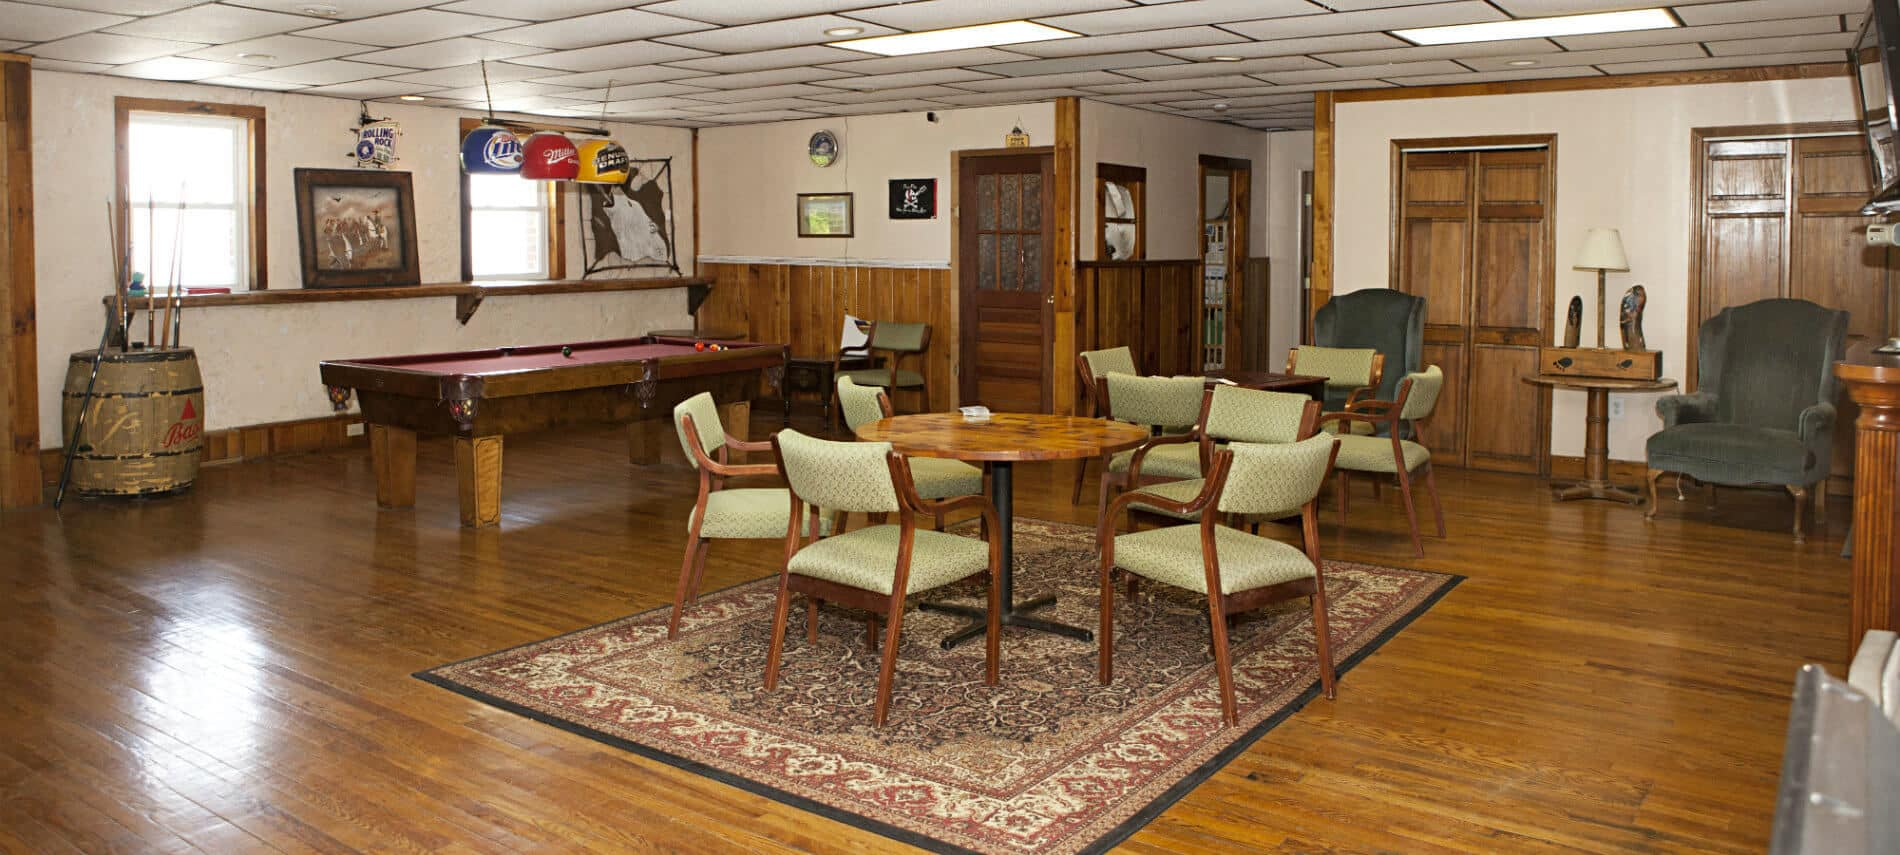 Spacious recreation room with hardwood floor, sitting chairs, table and chairs, pool table and TV